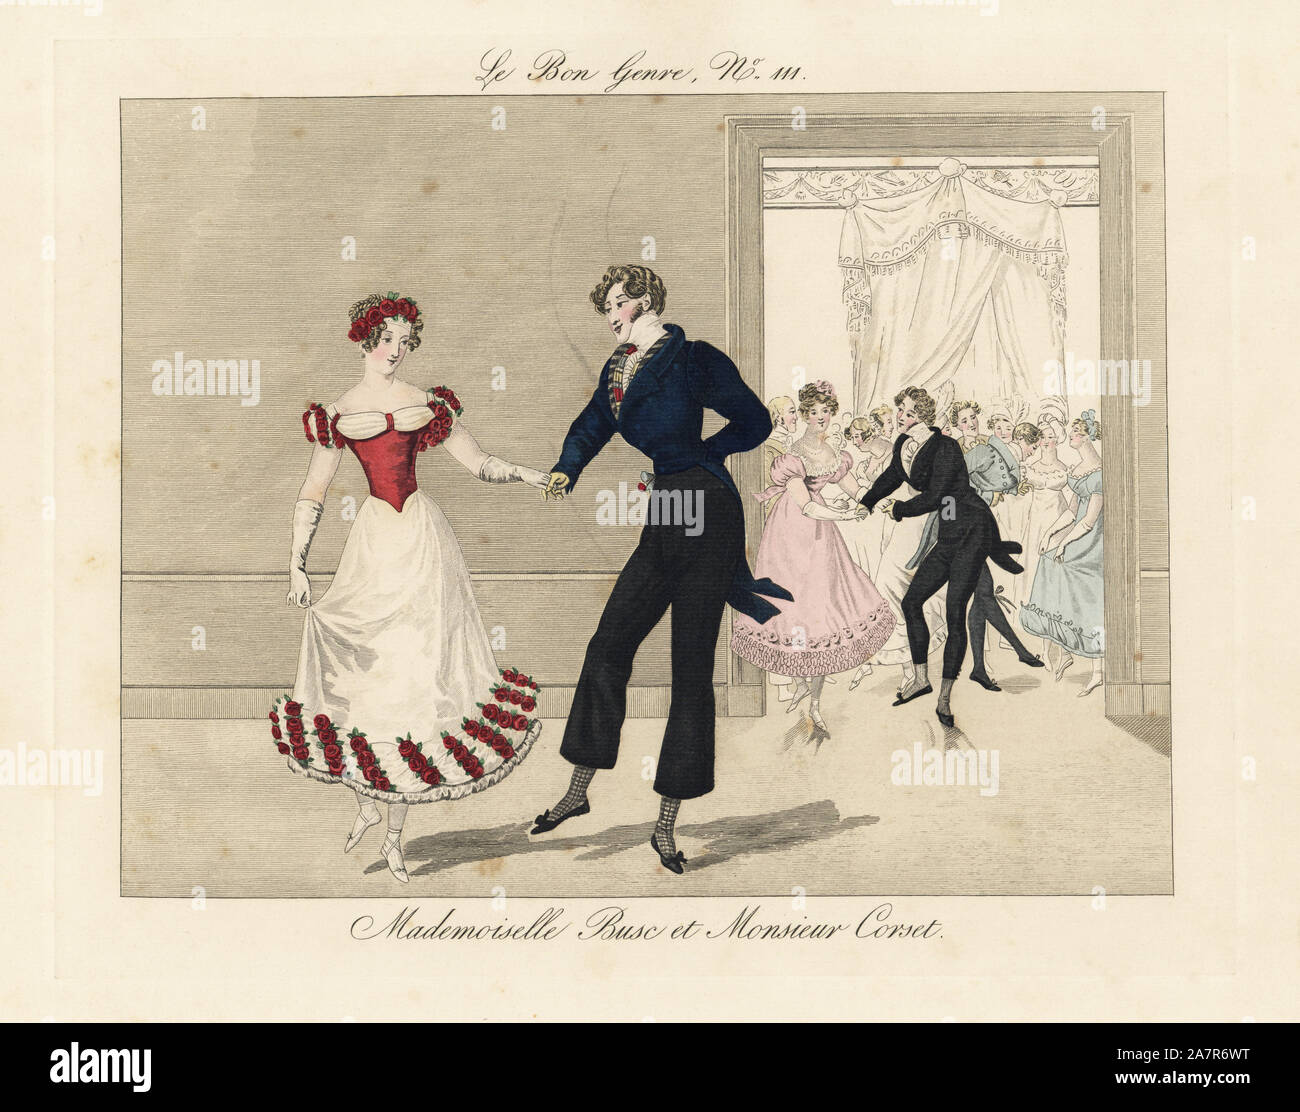 Corset Like High Resolution Stock Photography And Images Alamy